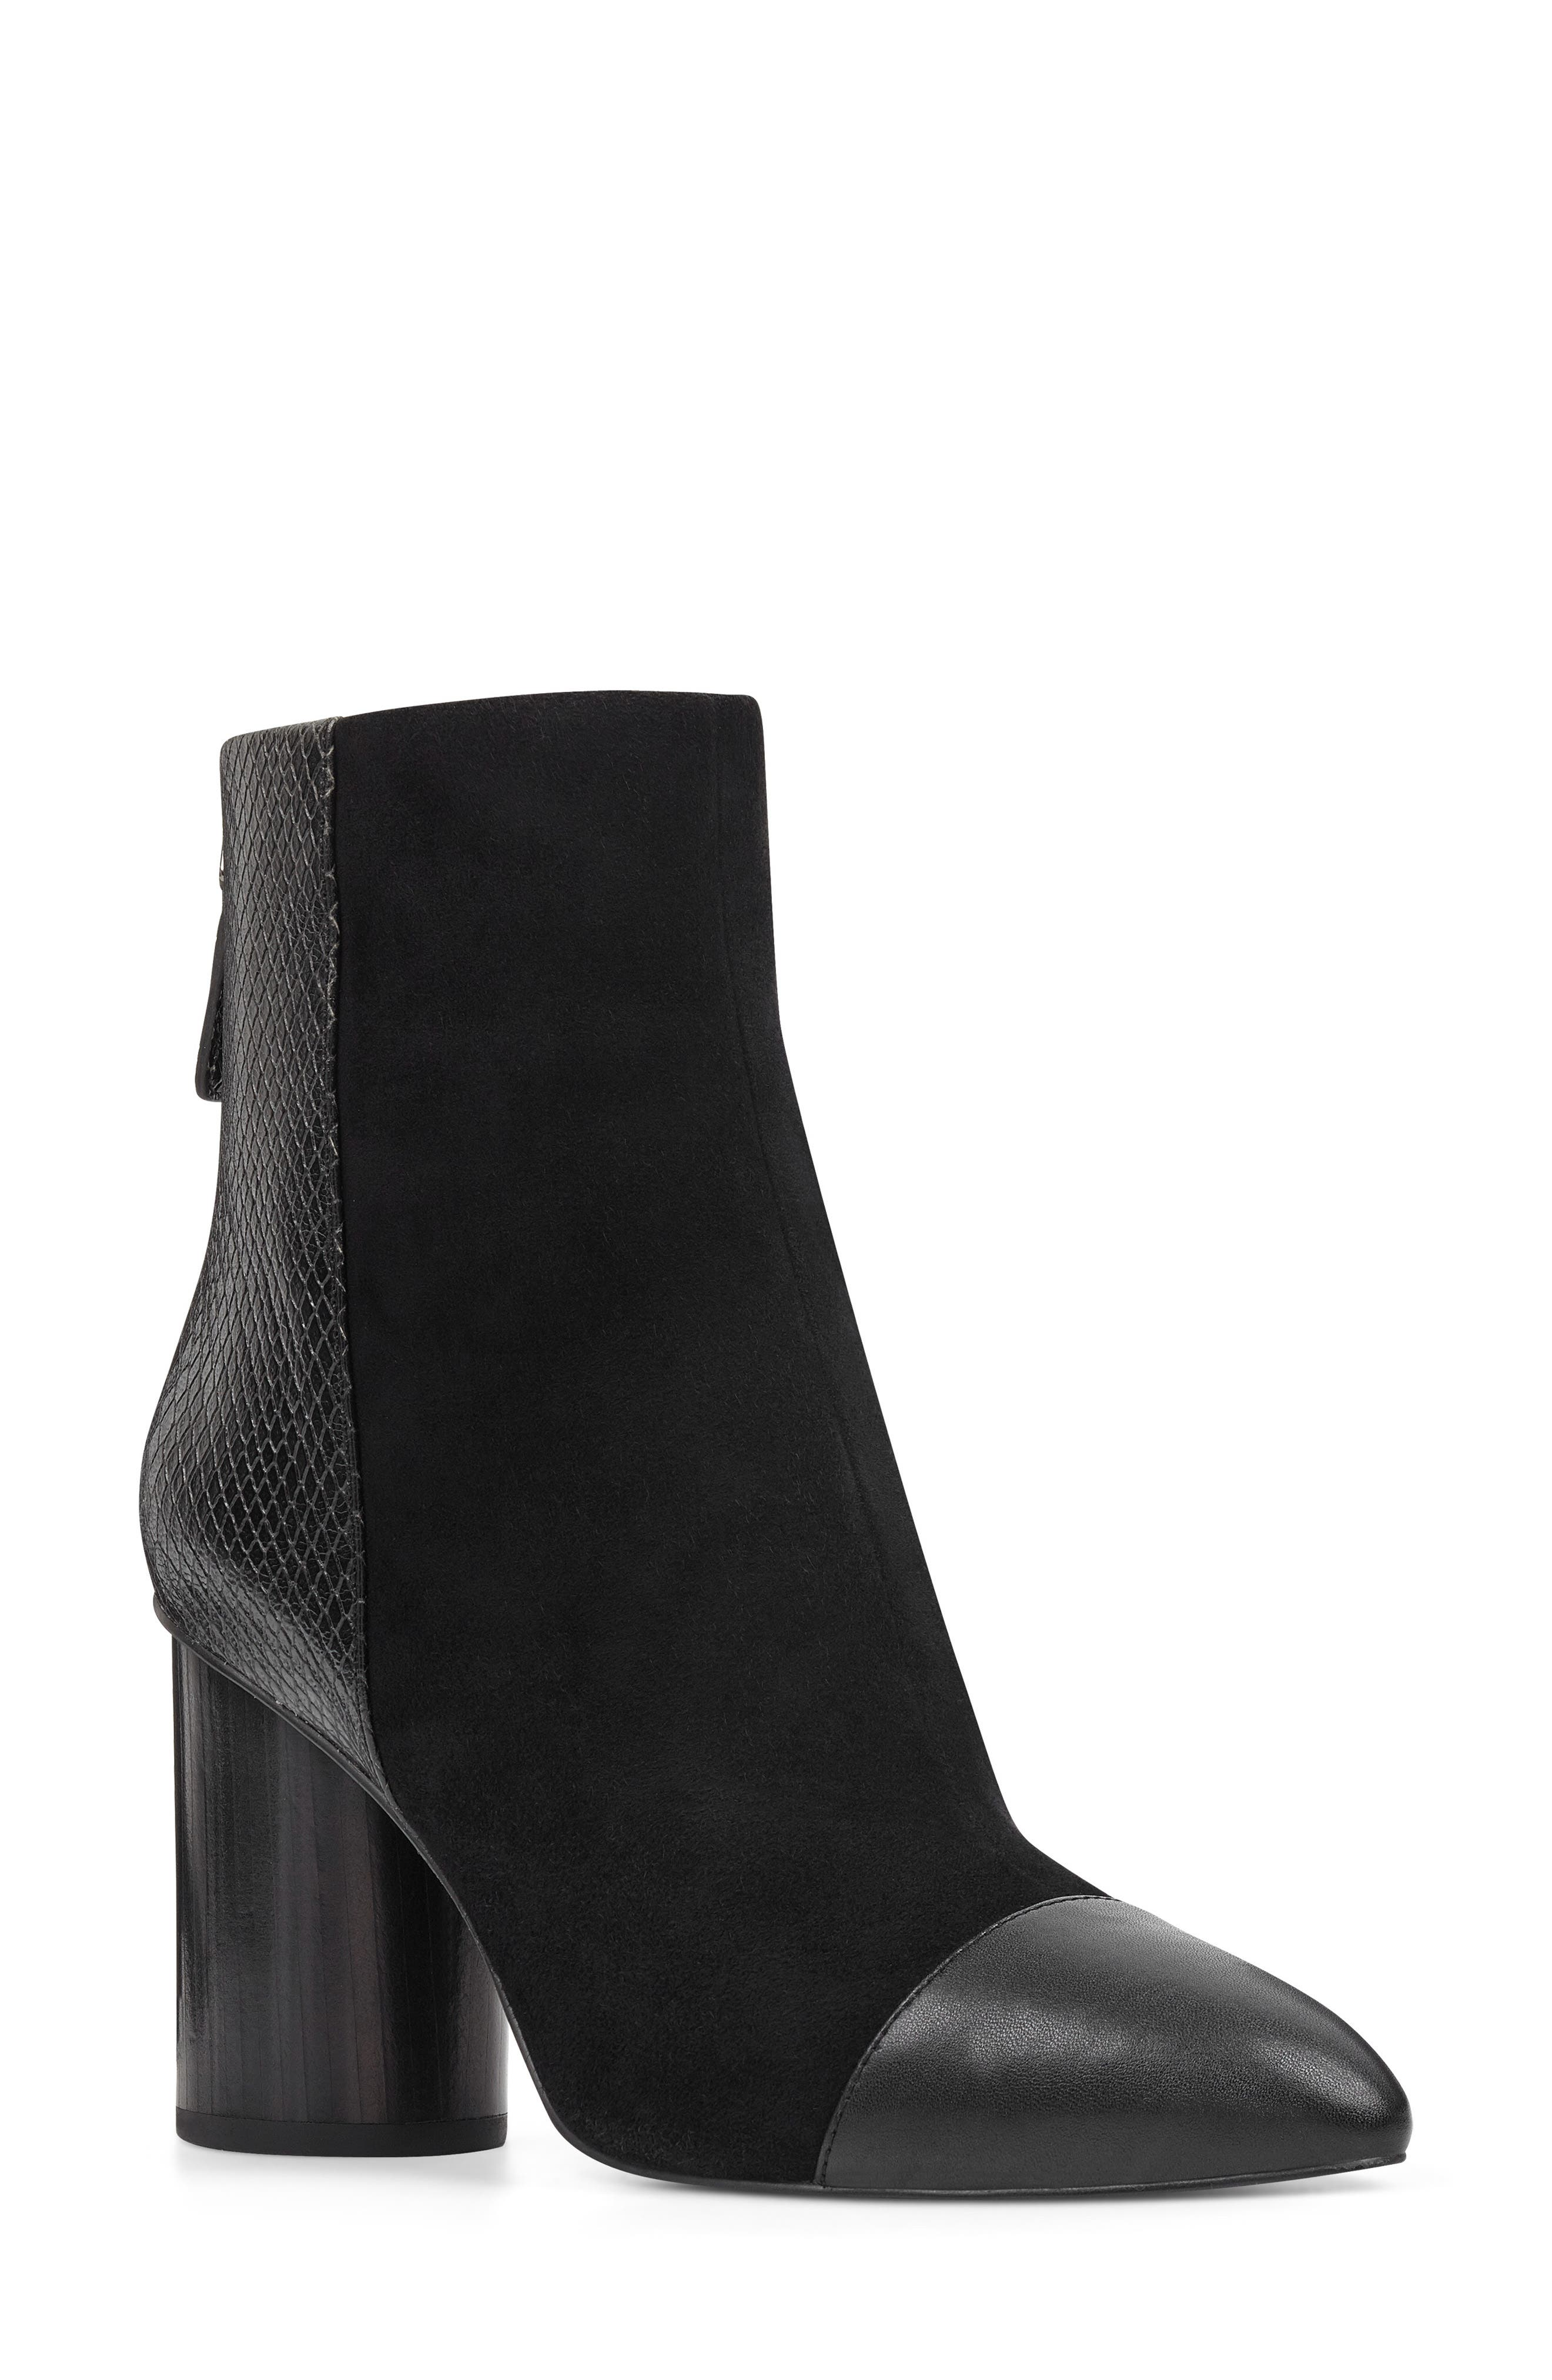 Nine West Cabrillo Cap Toe Bootie- Black